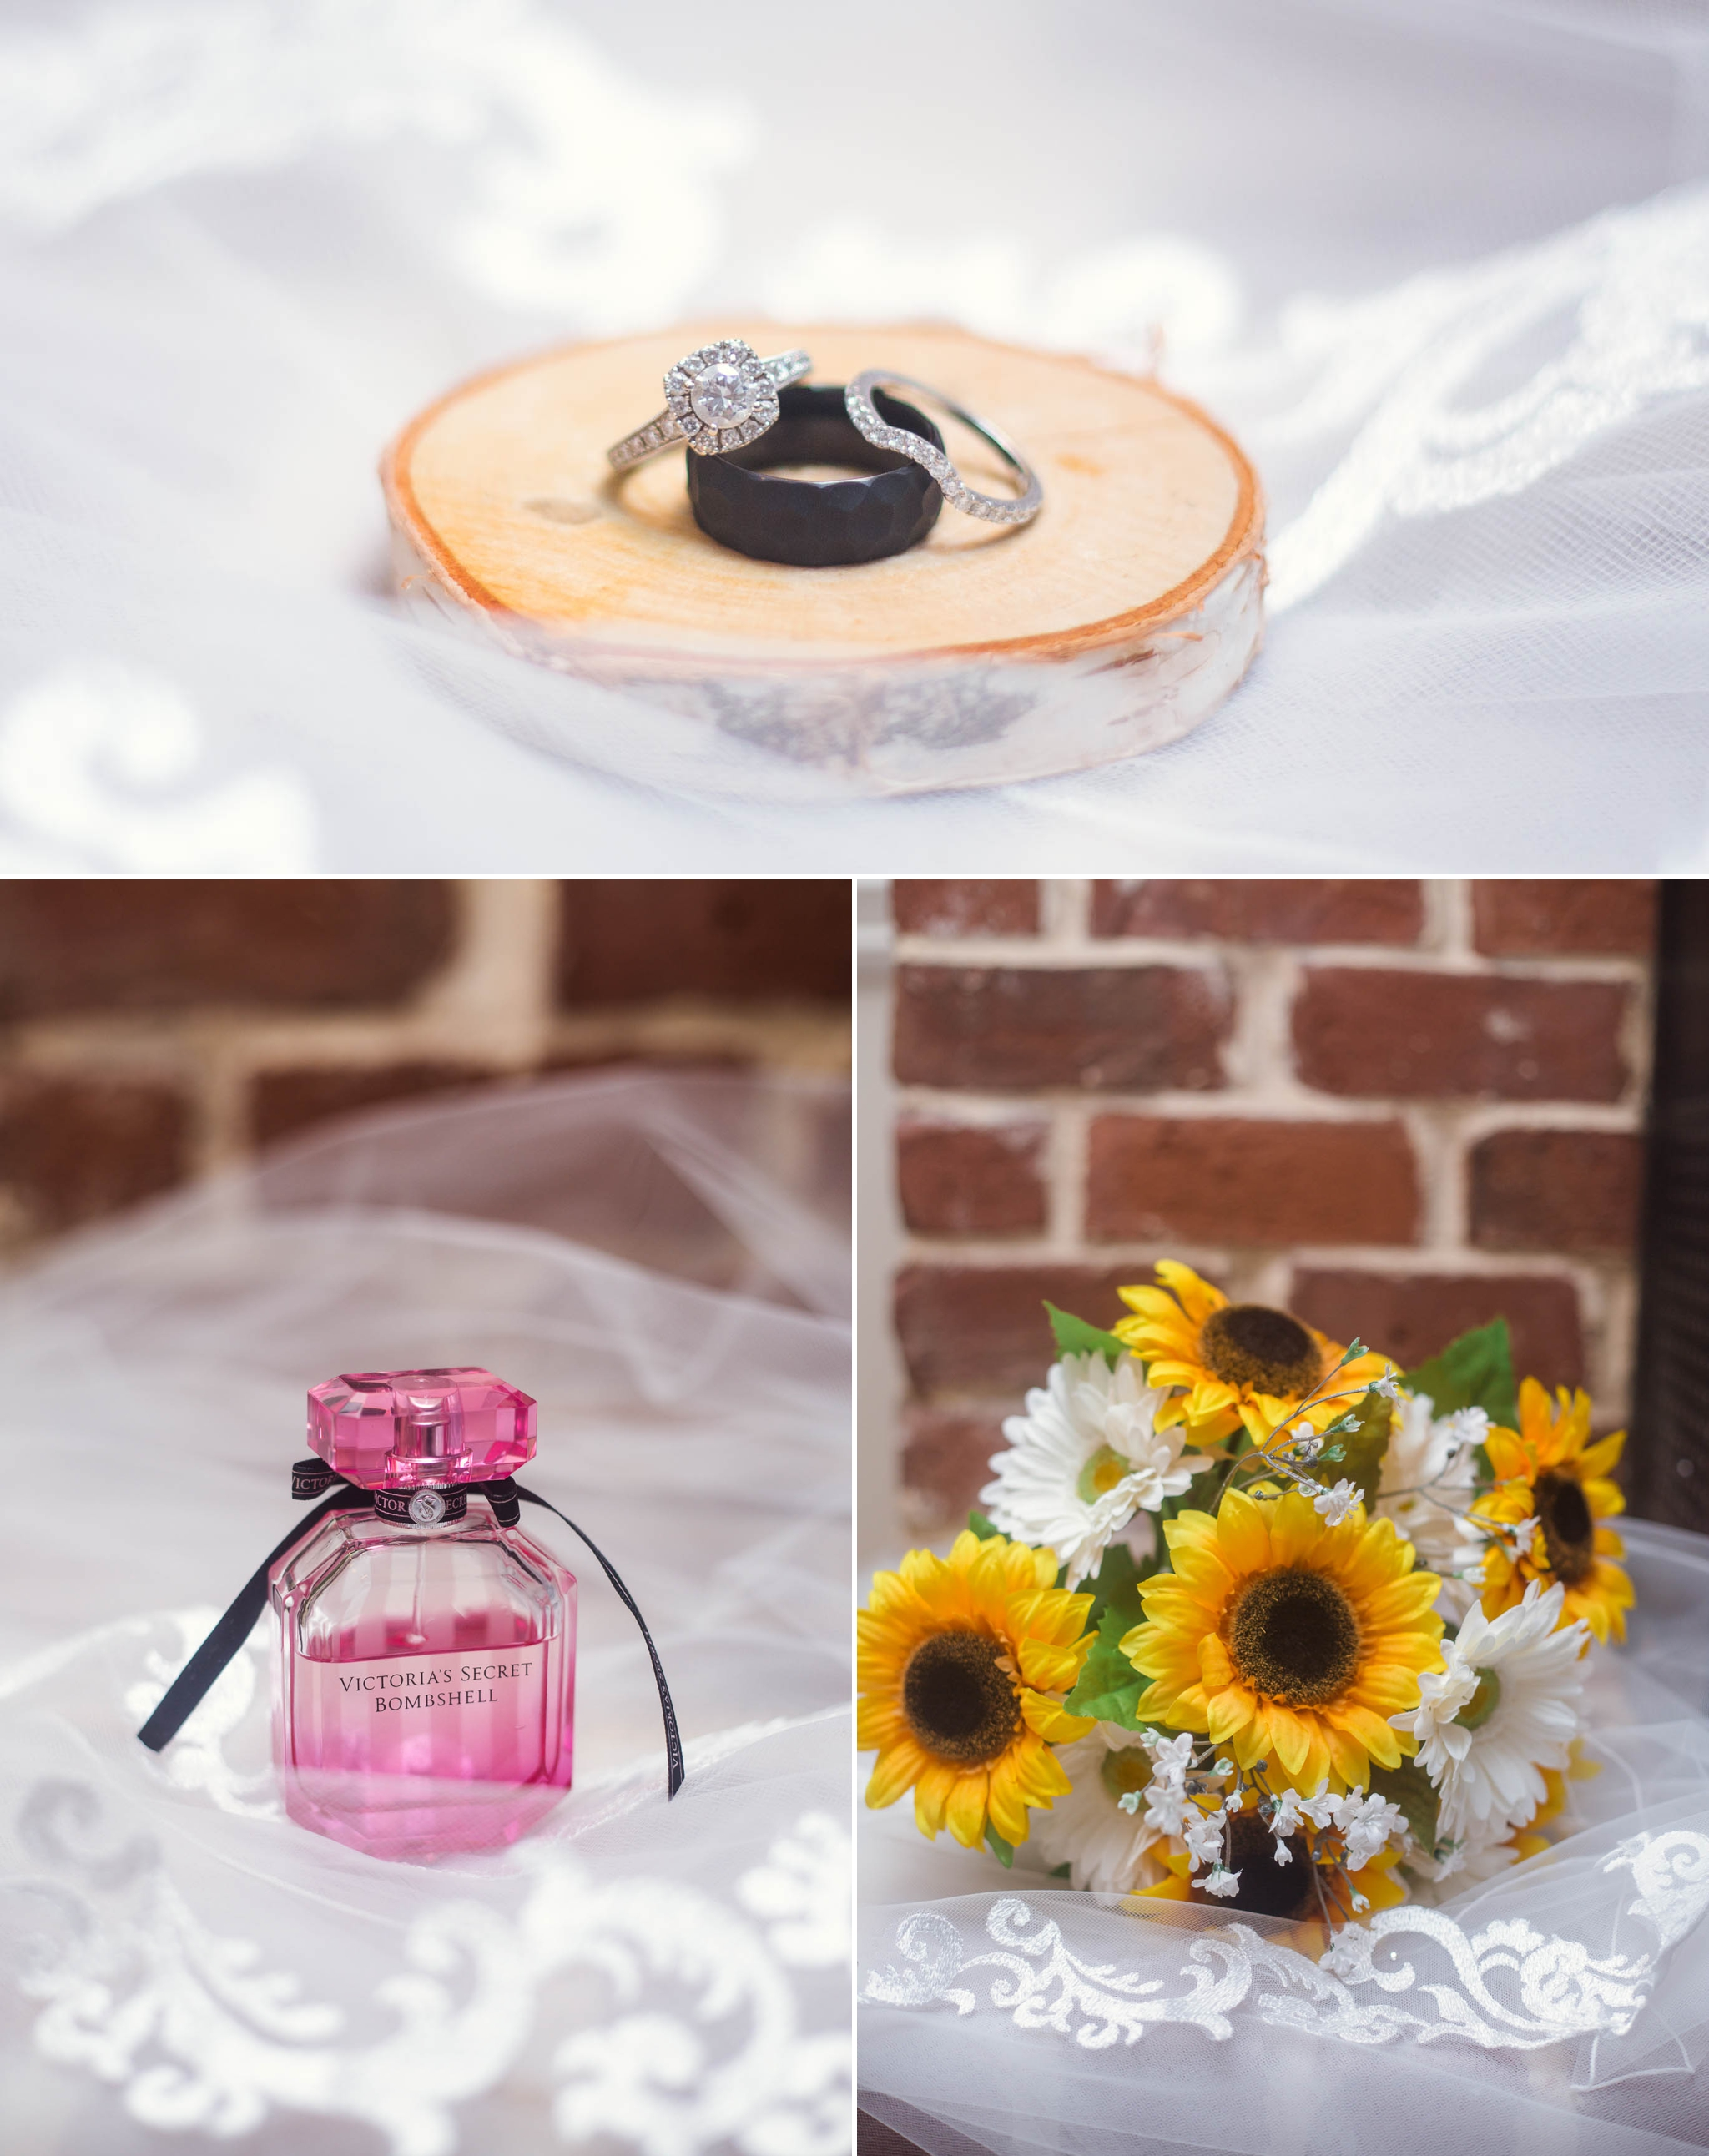 Bridal Details - Brittany + Greg - The Groomes Place - Charlotte, NC Wedding Photographer